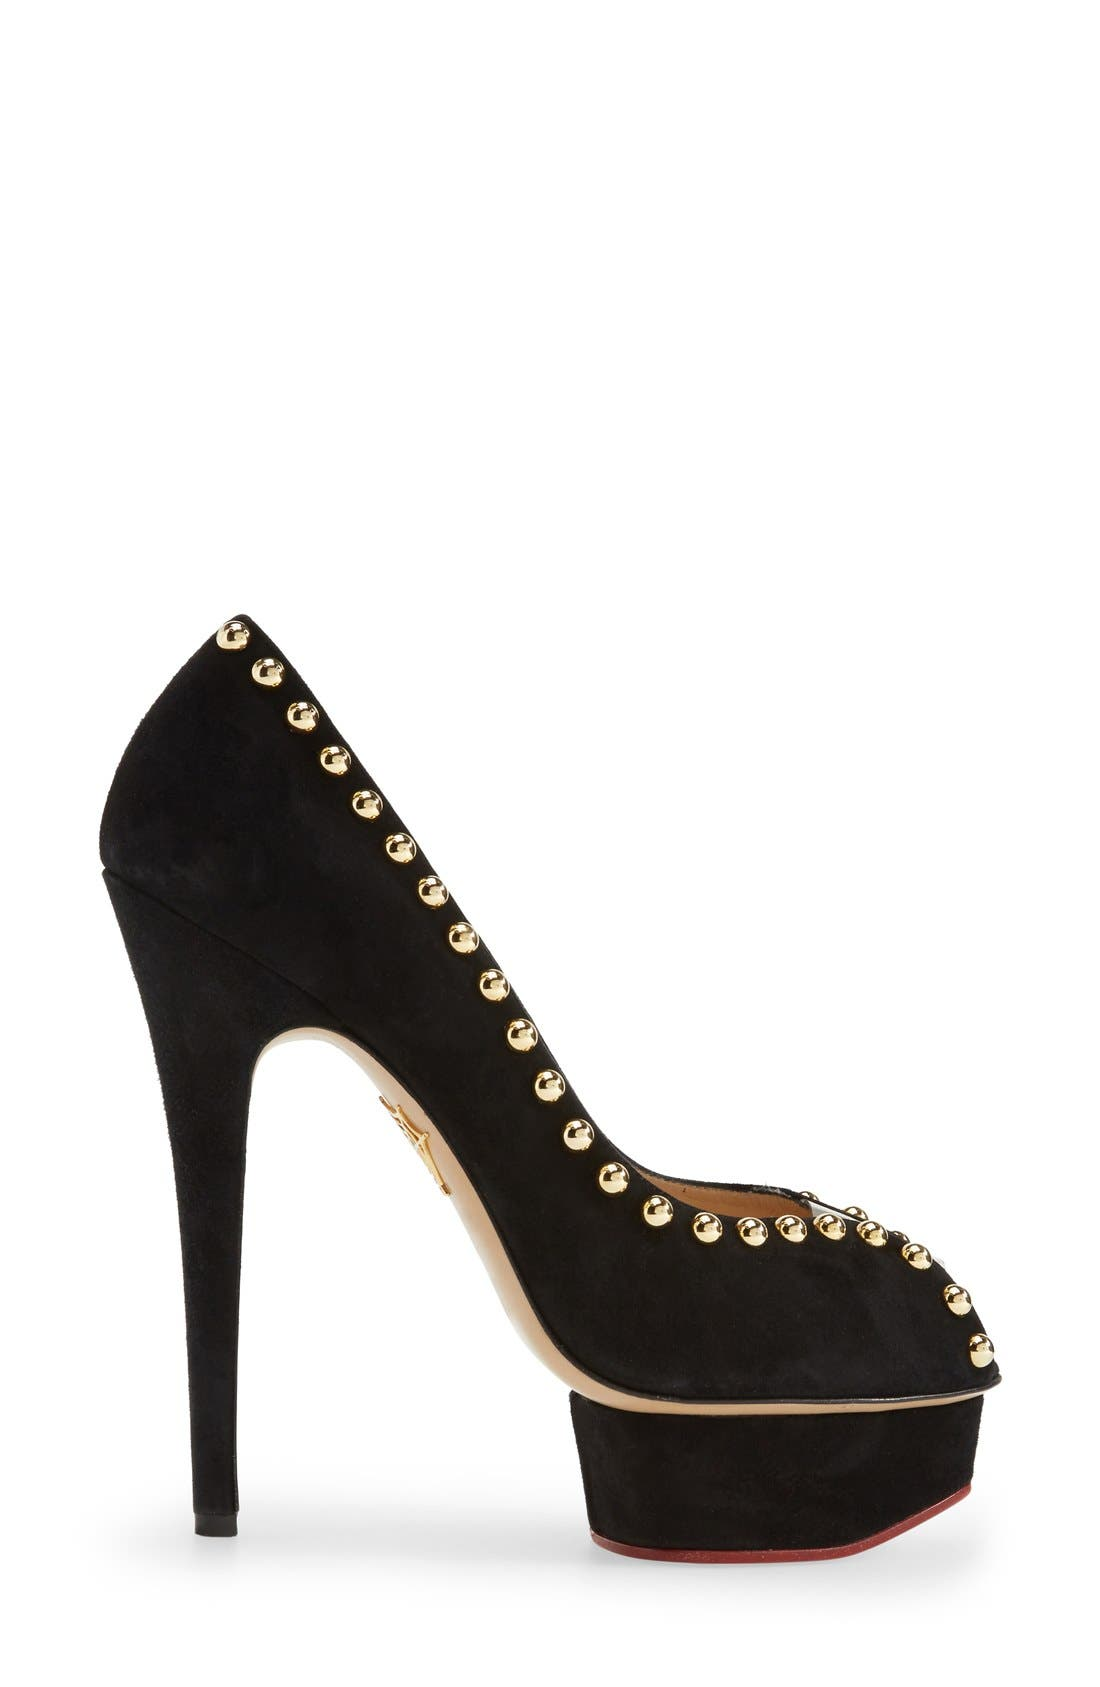 'Daphne' Studded Peep Toe Platform Pump,                             Alternate thumbnail 3, color,                             001